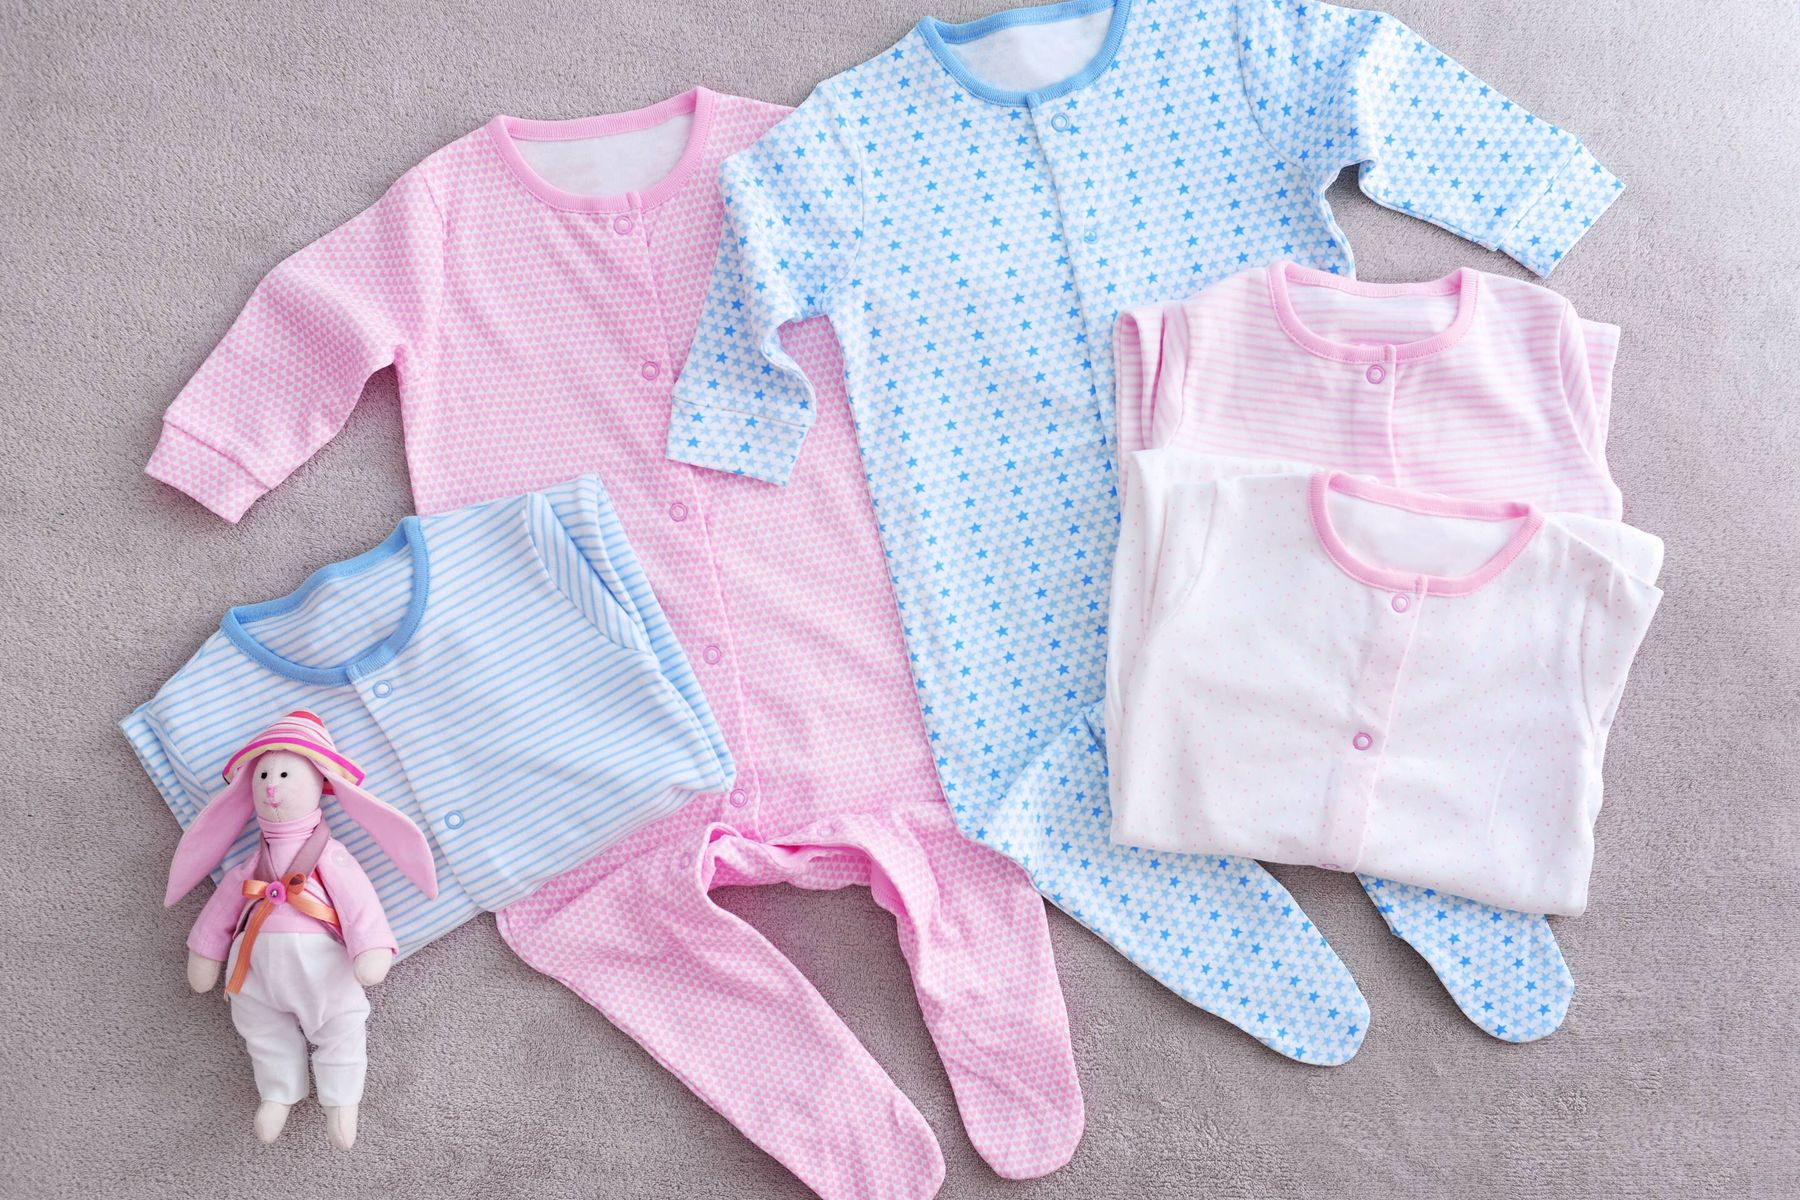 Household Items Can Keep Your Baby's Clothes Soft and Fresh